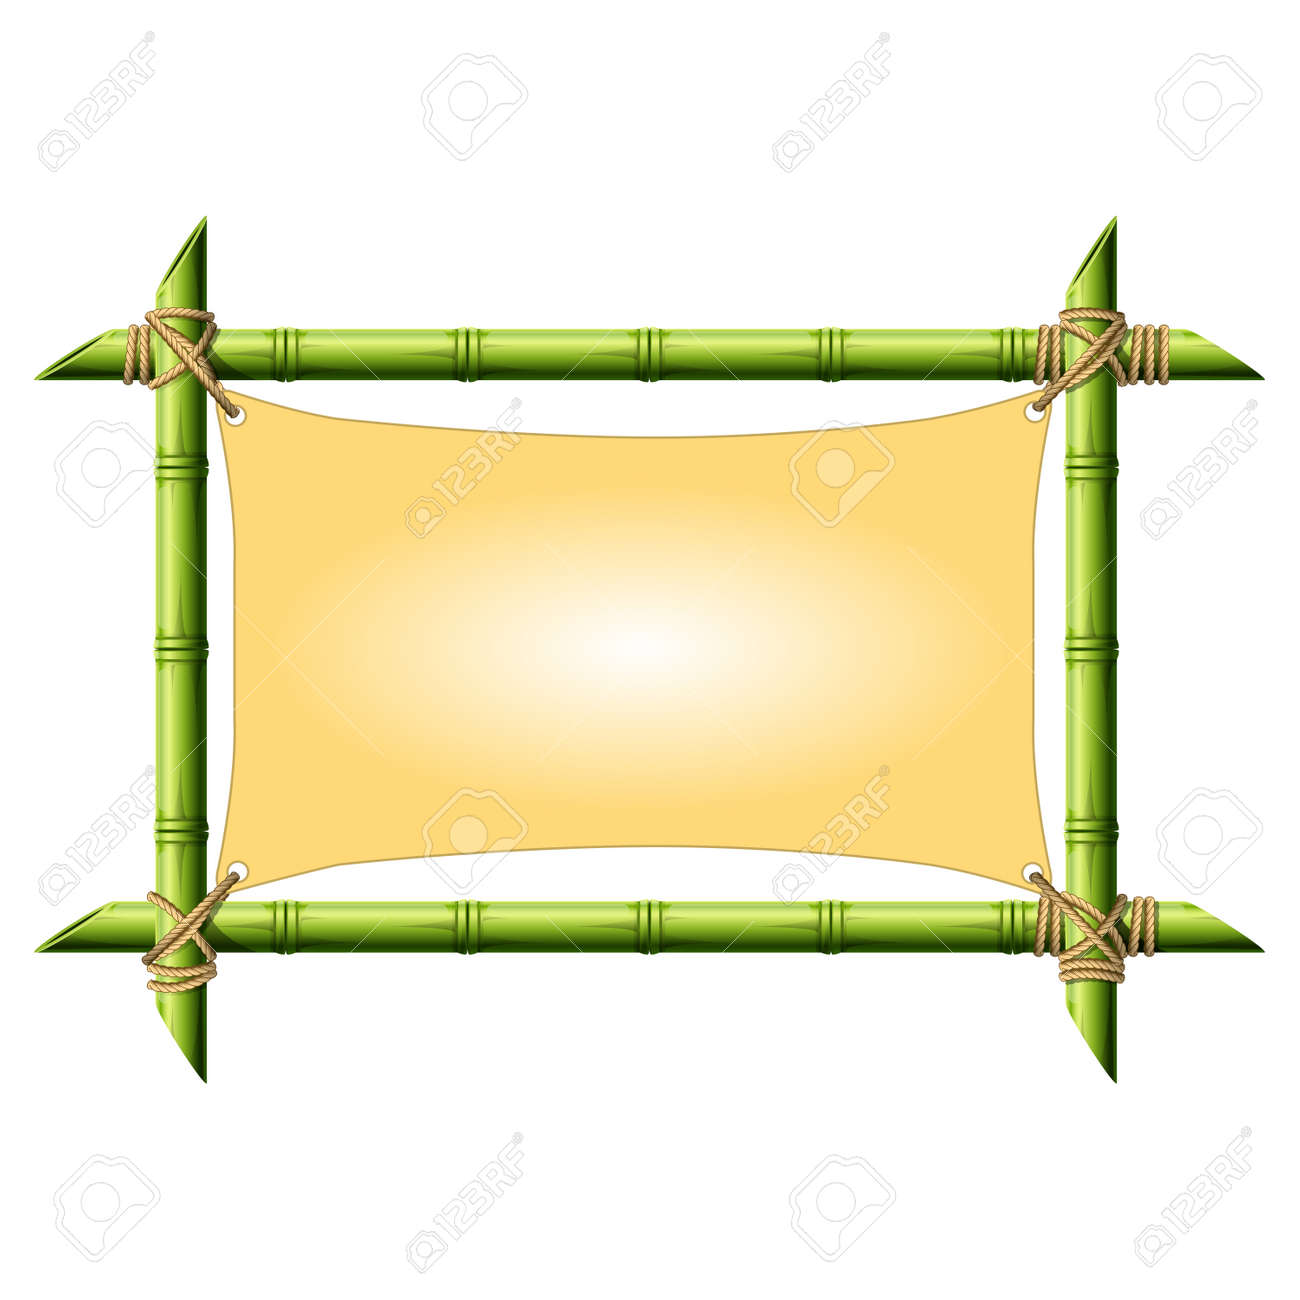 Bamboo Frame With Stretched Canvas Isolated On White Royalty Free ...